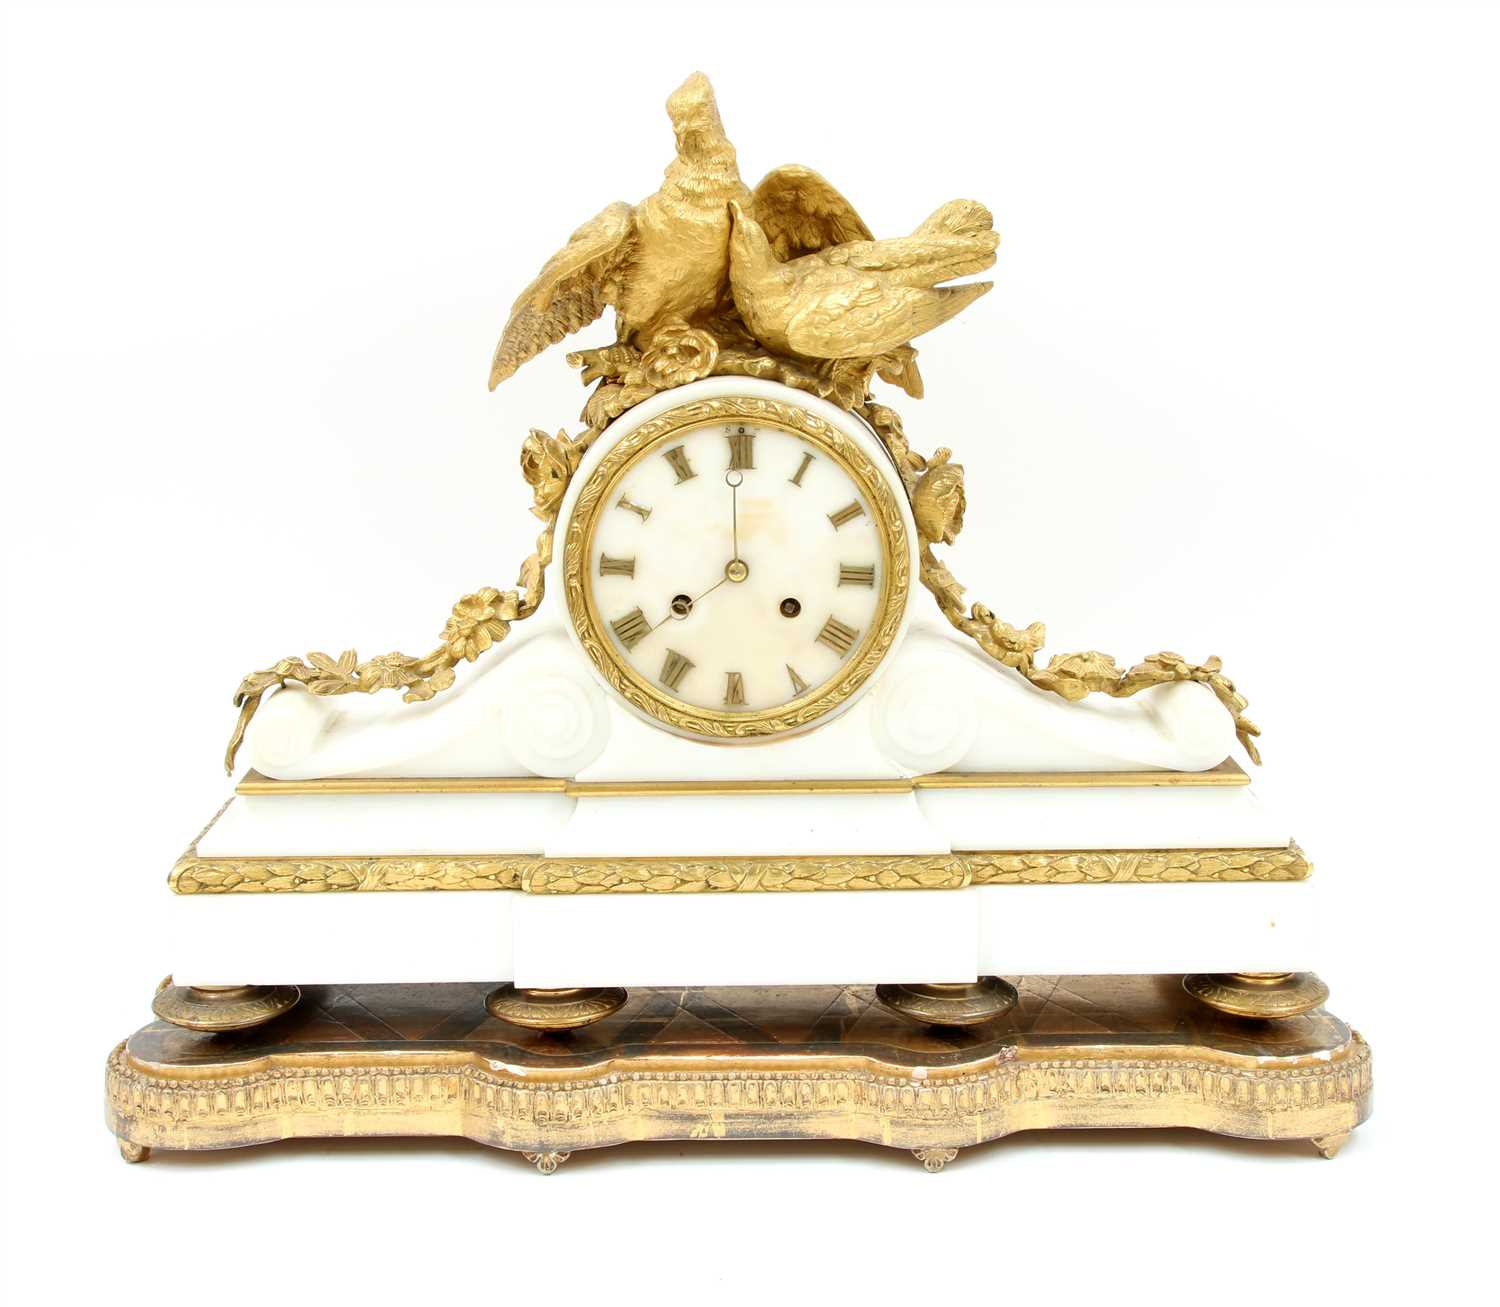 Lot 32 - A French alabaster and ormolu mantel clock